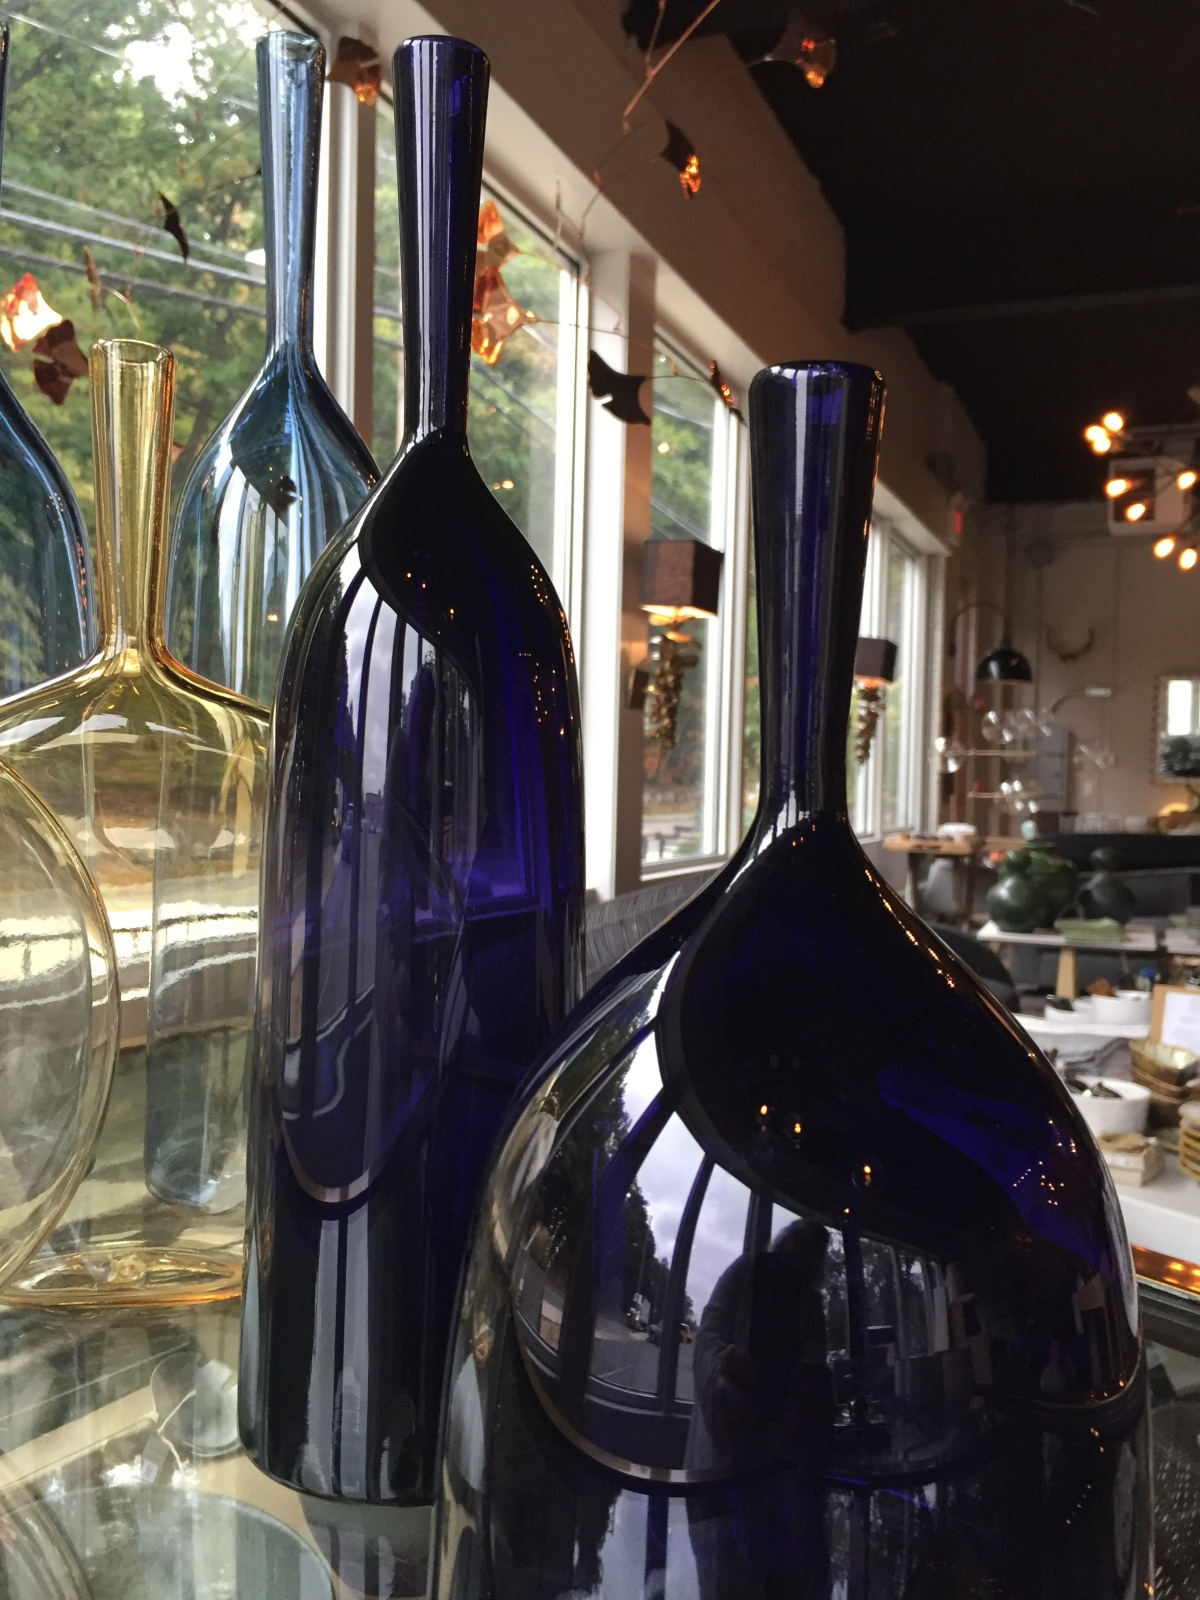 new-angelic-vessels-joe-cariati-artefacthome-2